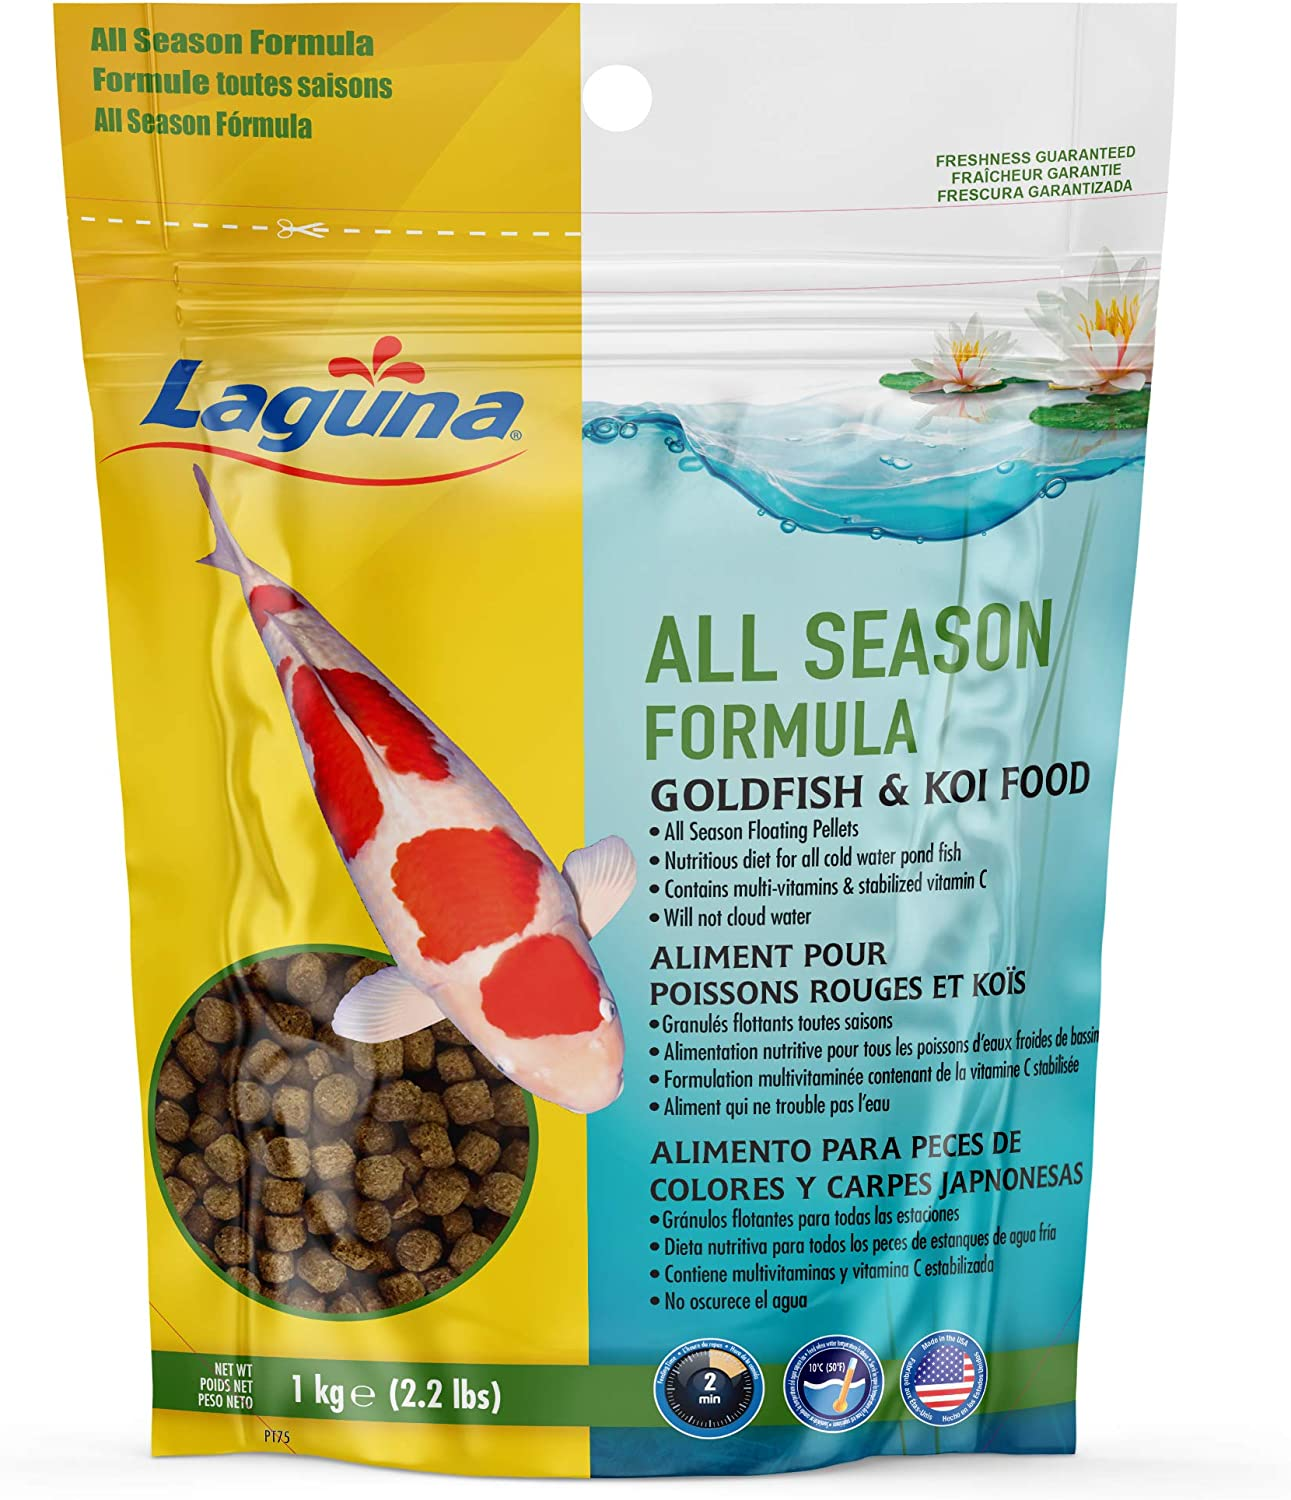 Laguna All Season Goldfish & Koi Floating Food, Pond Fish Food